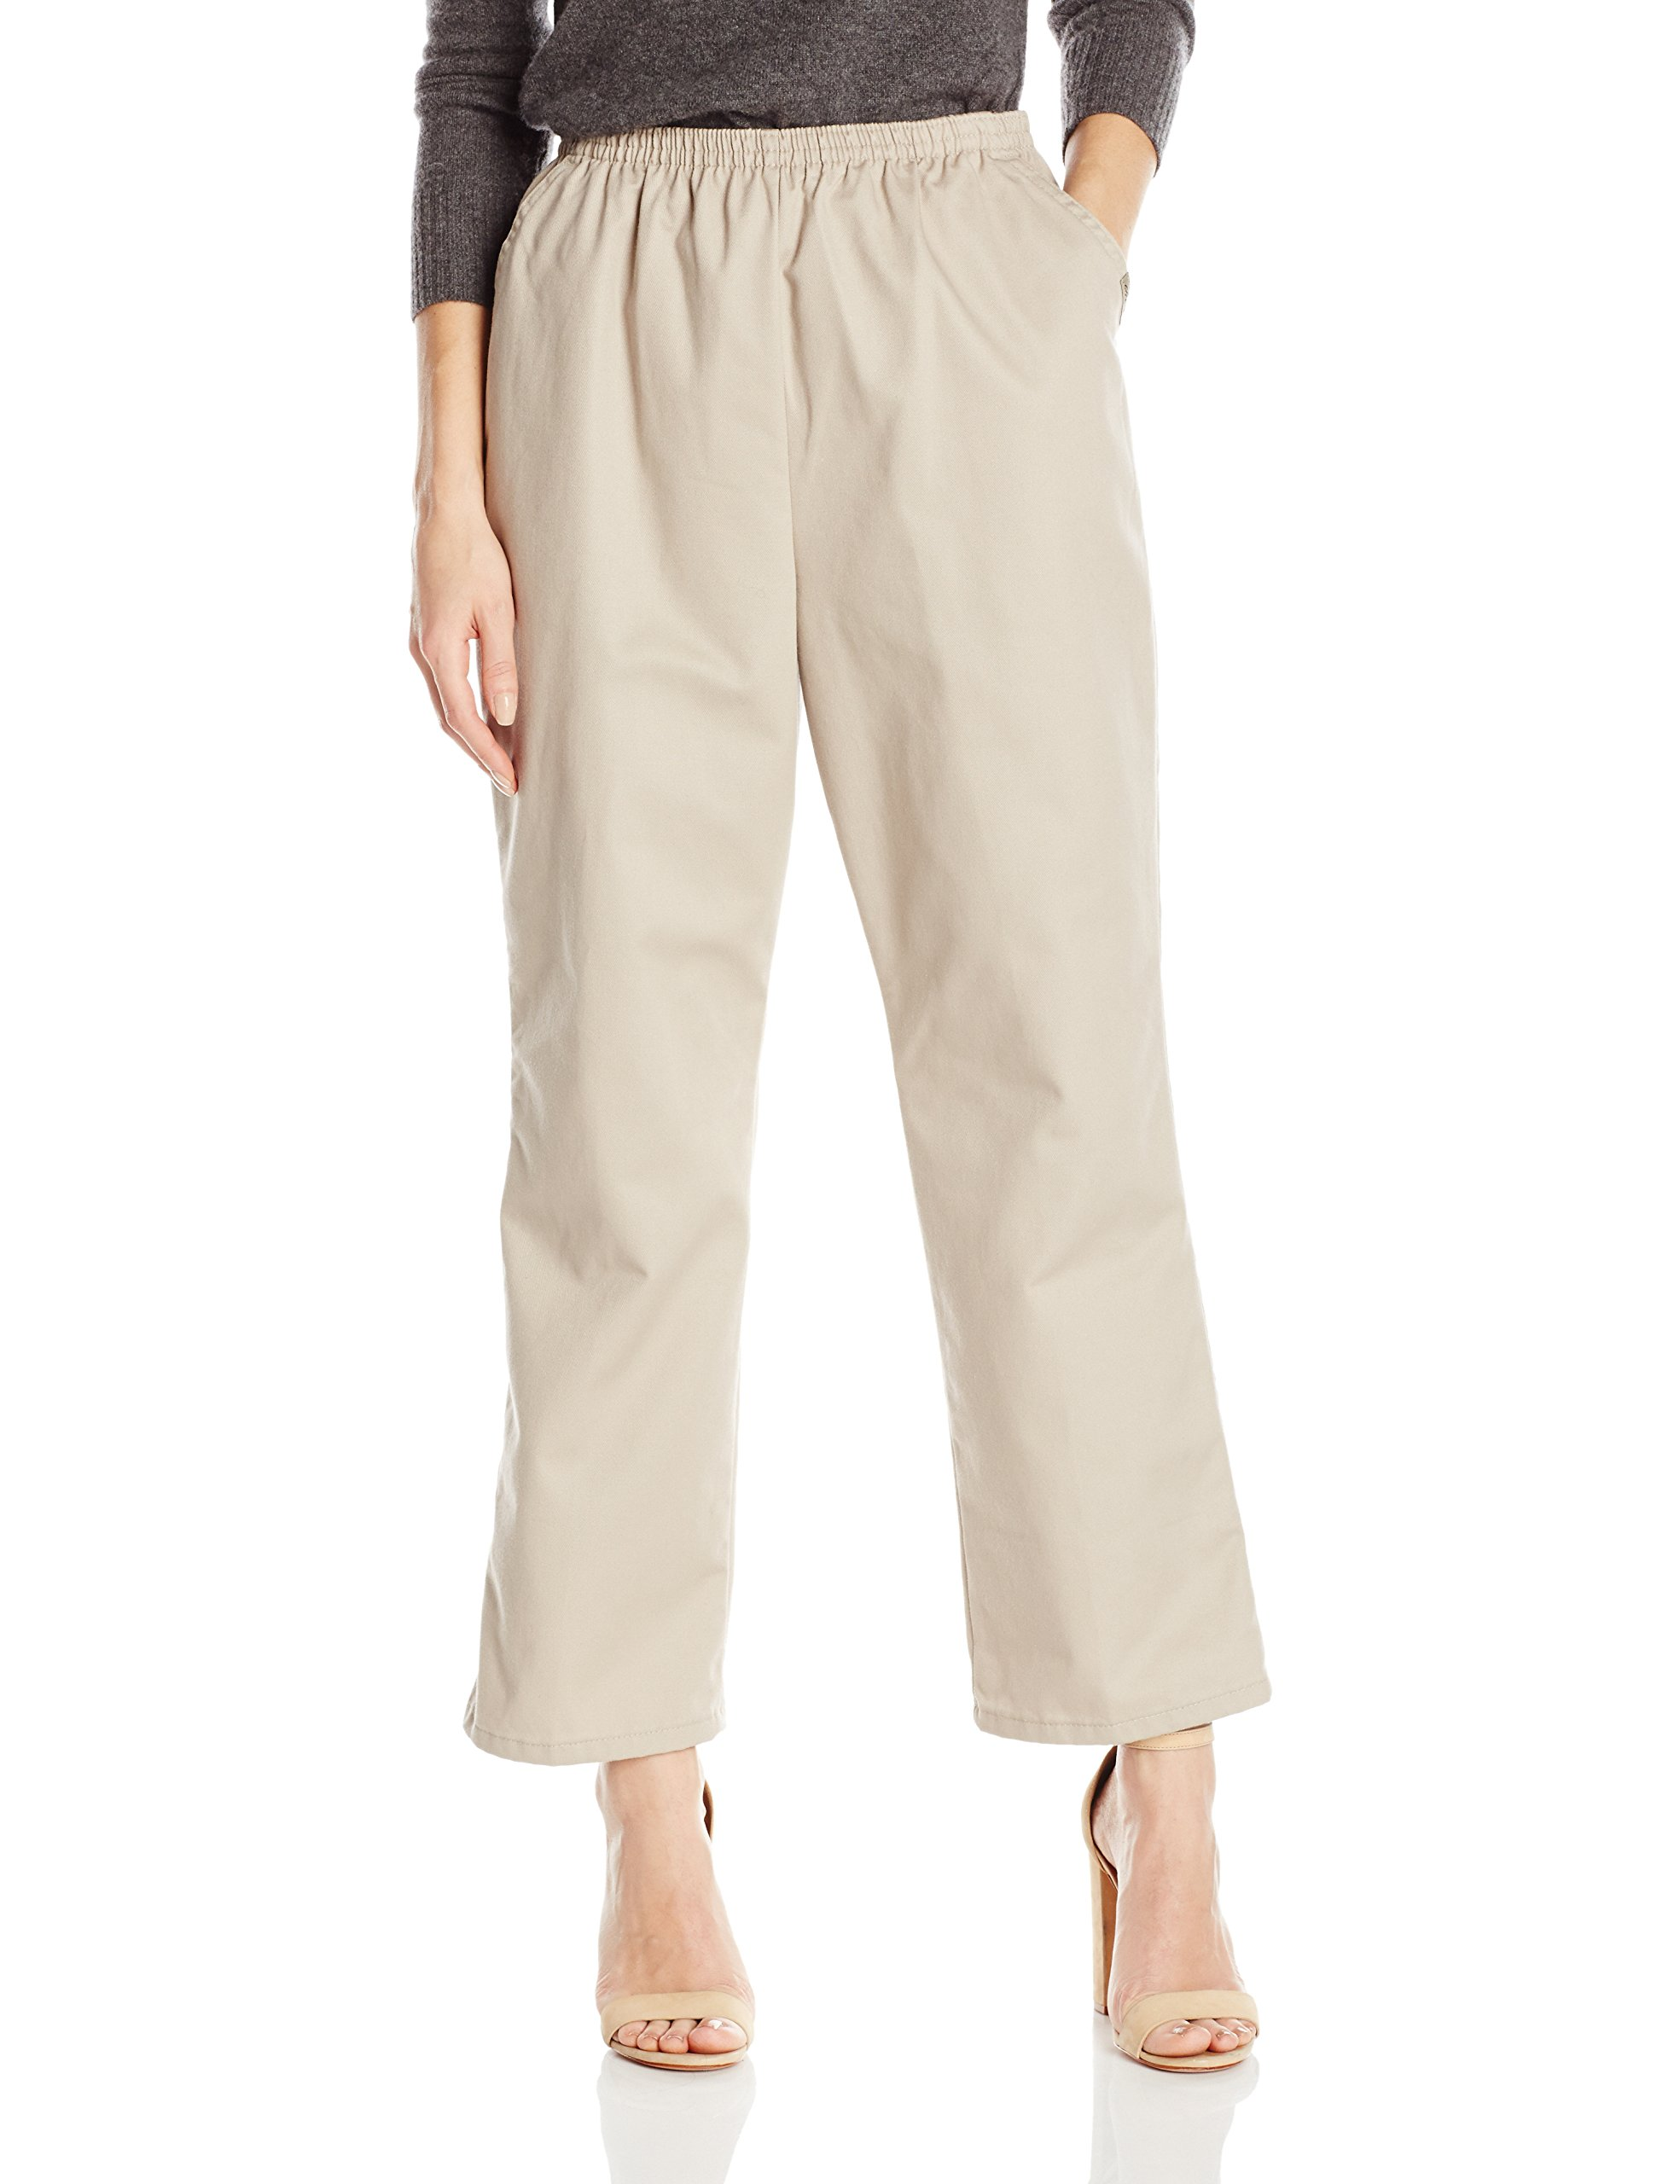 Chic Classic Collection Women's Petite Cotton Pull-On Pant with Elastic Waist, Khaki Twill, 14P